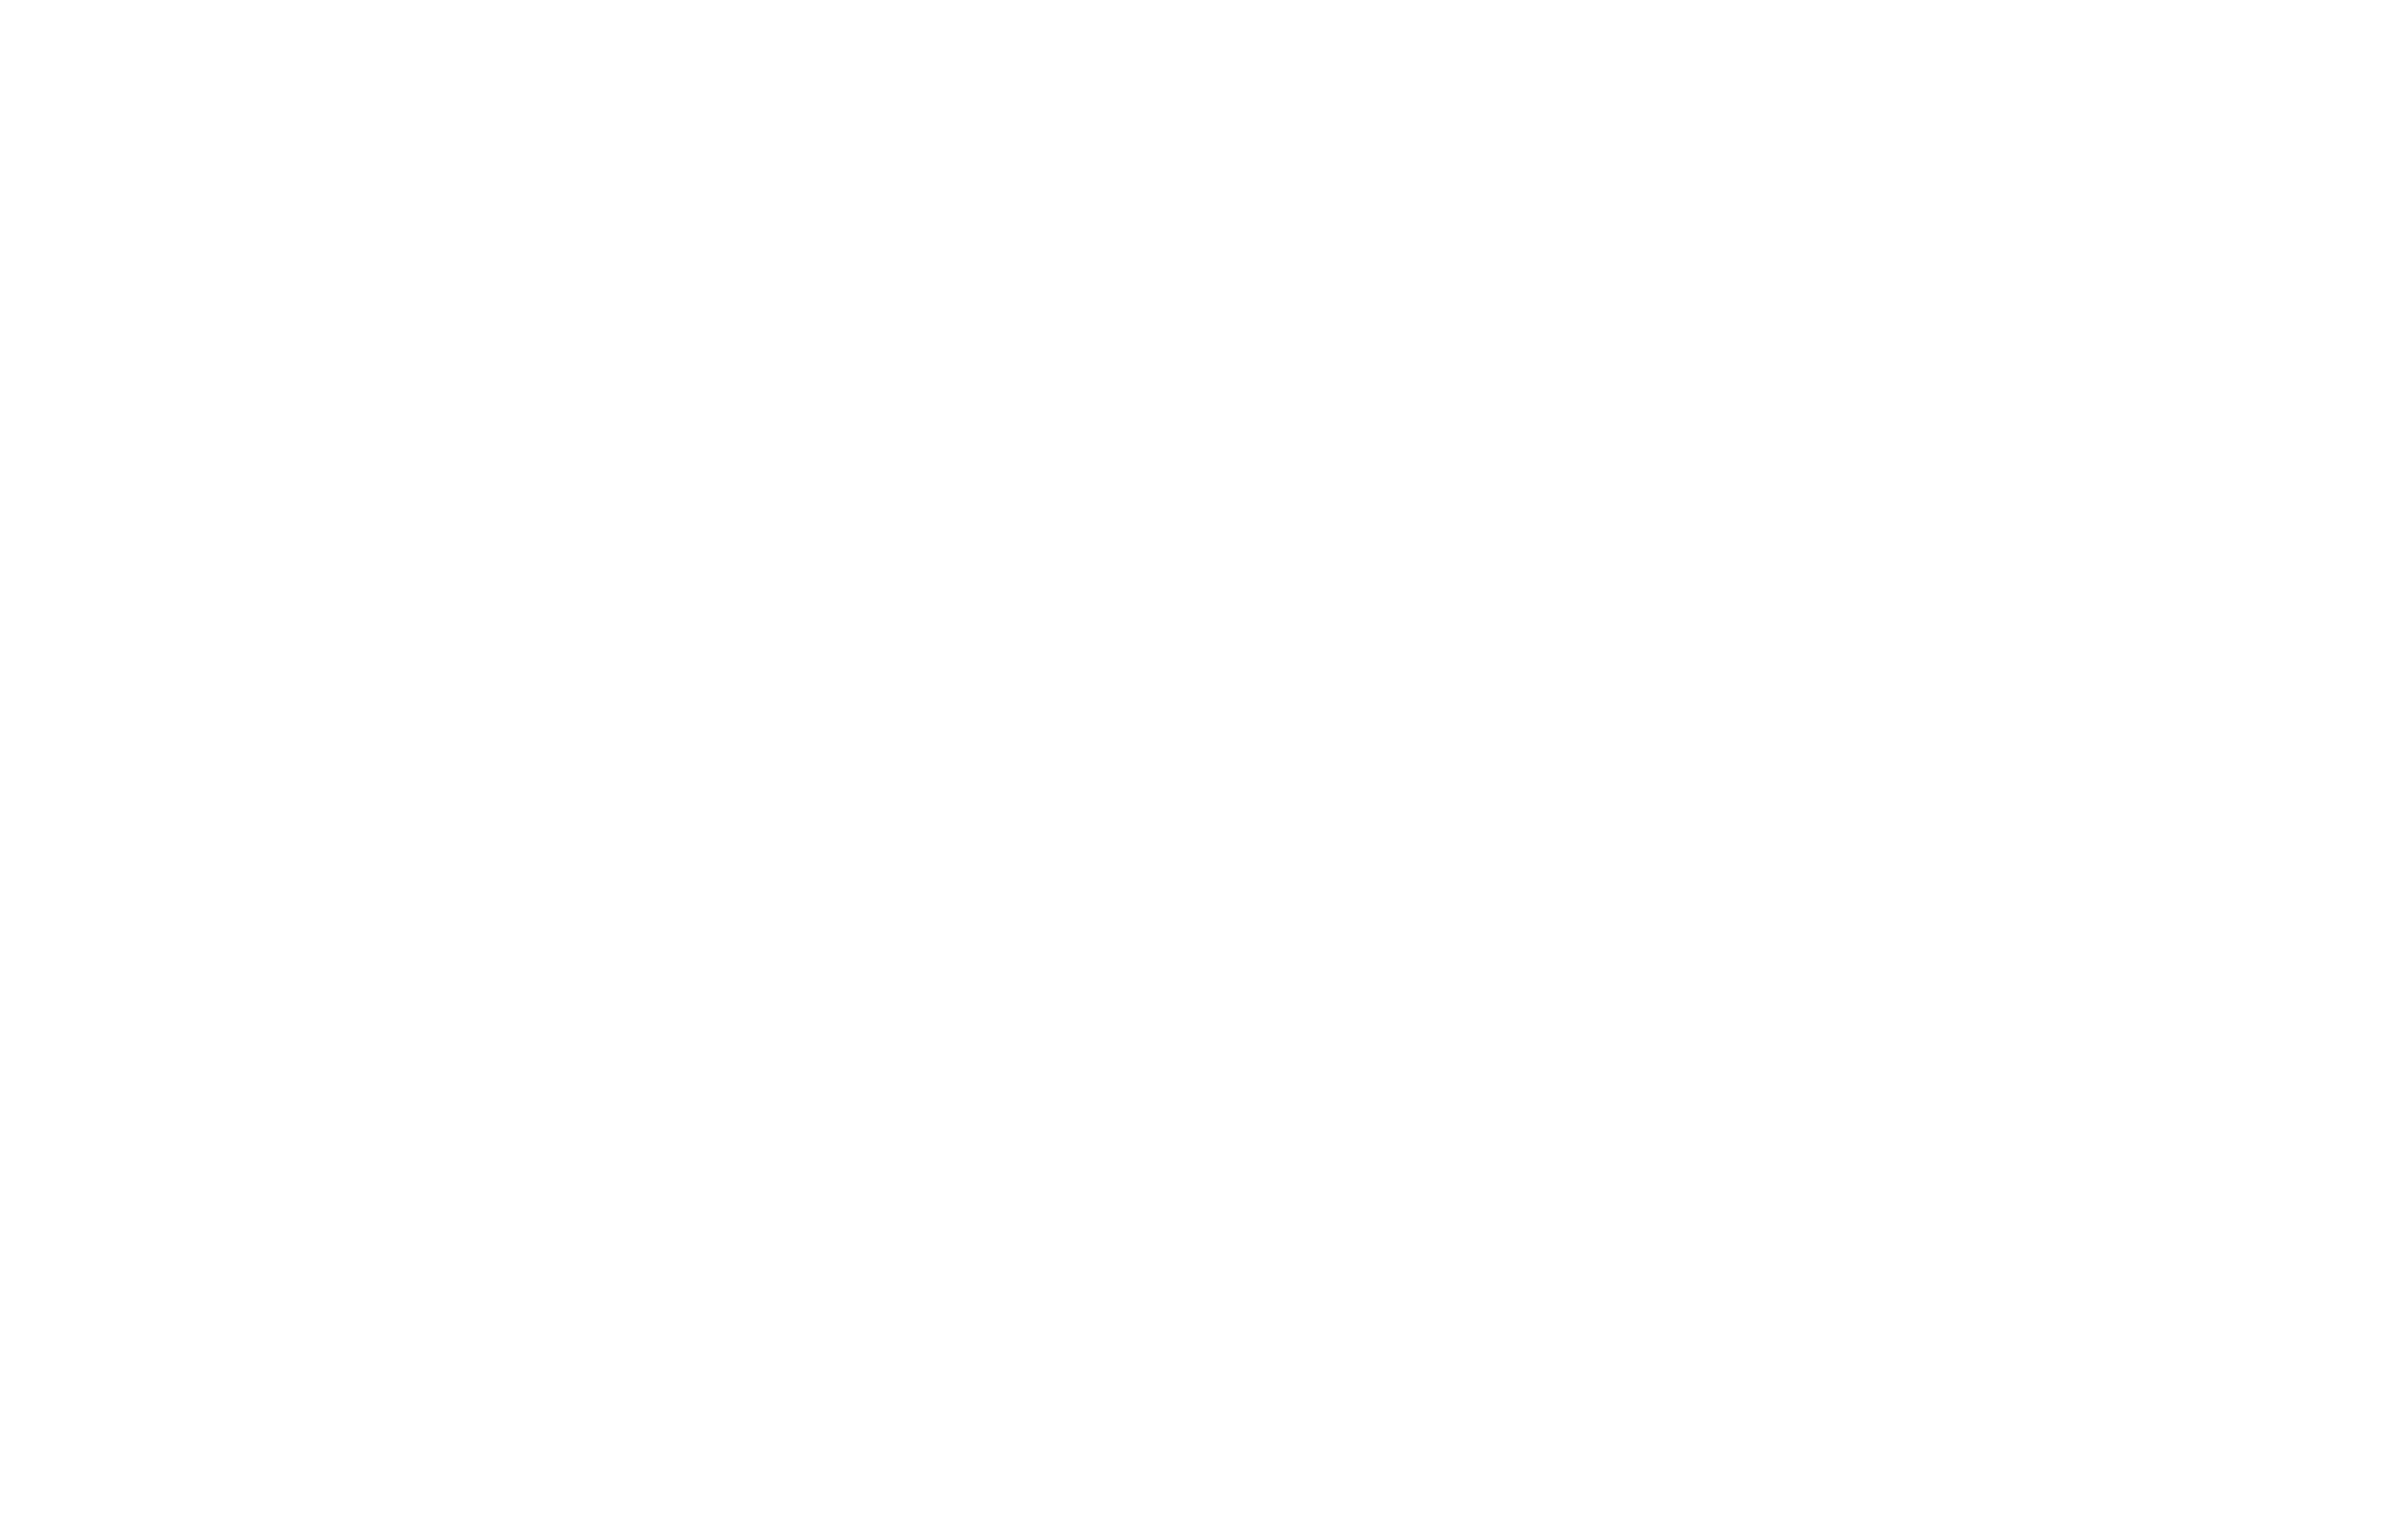 go beyond together